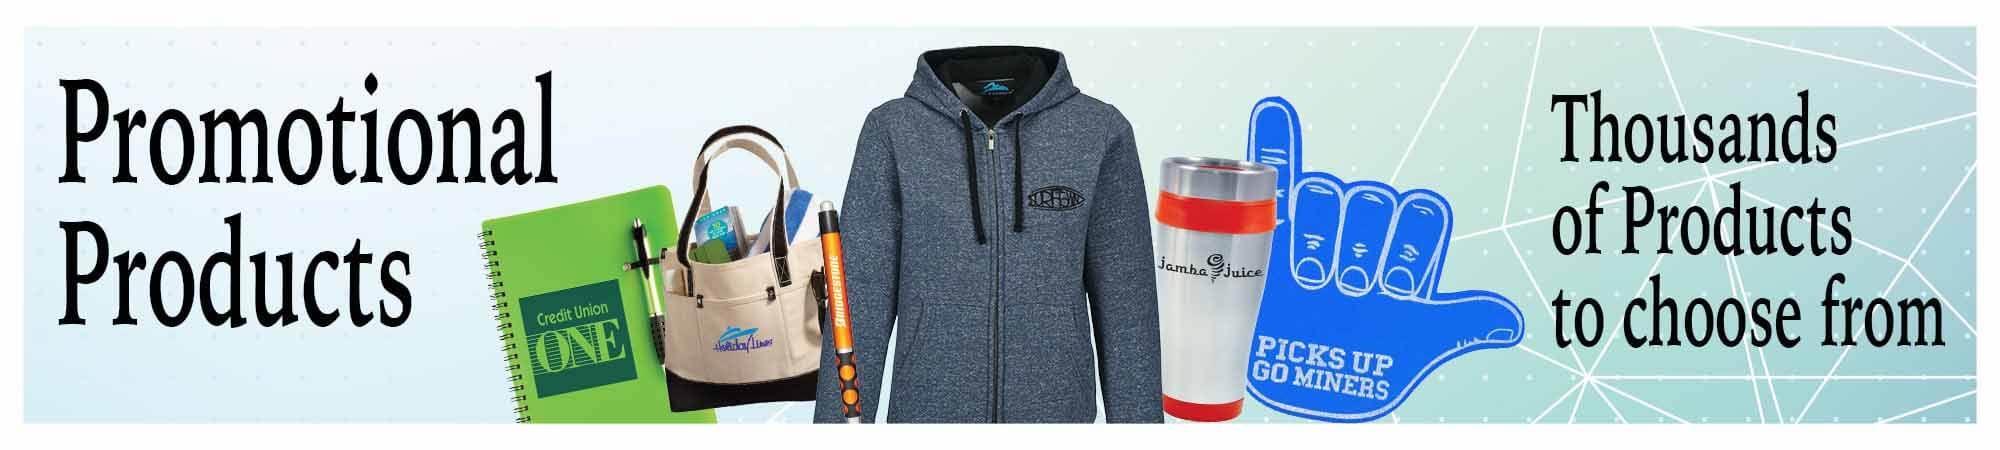 Promotional products Warsaw Indiana